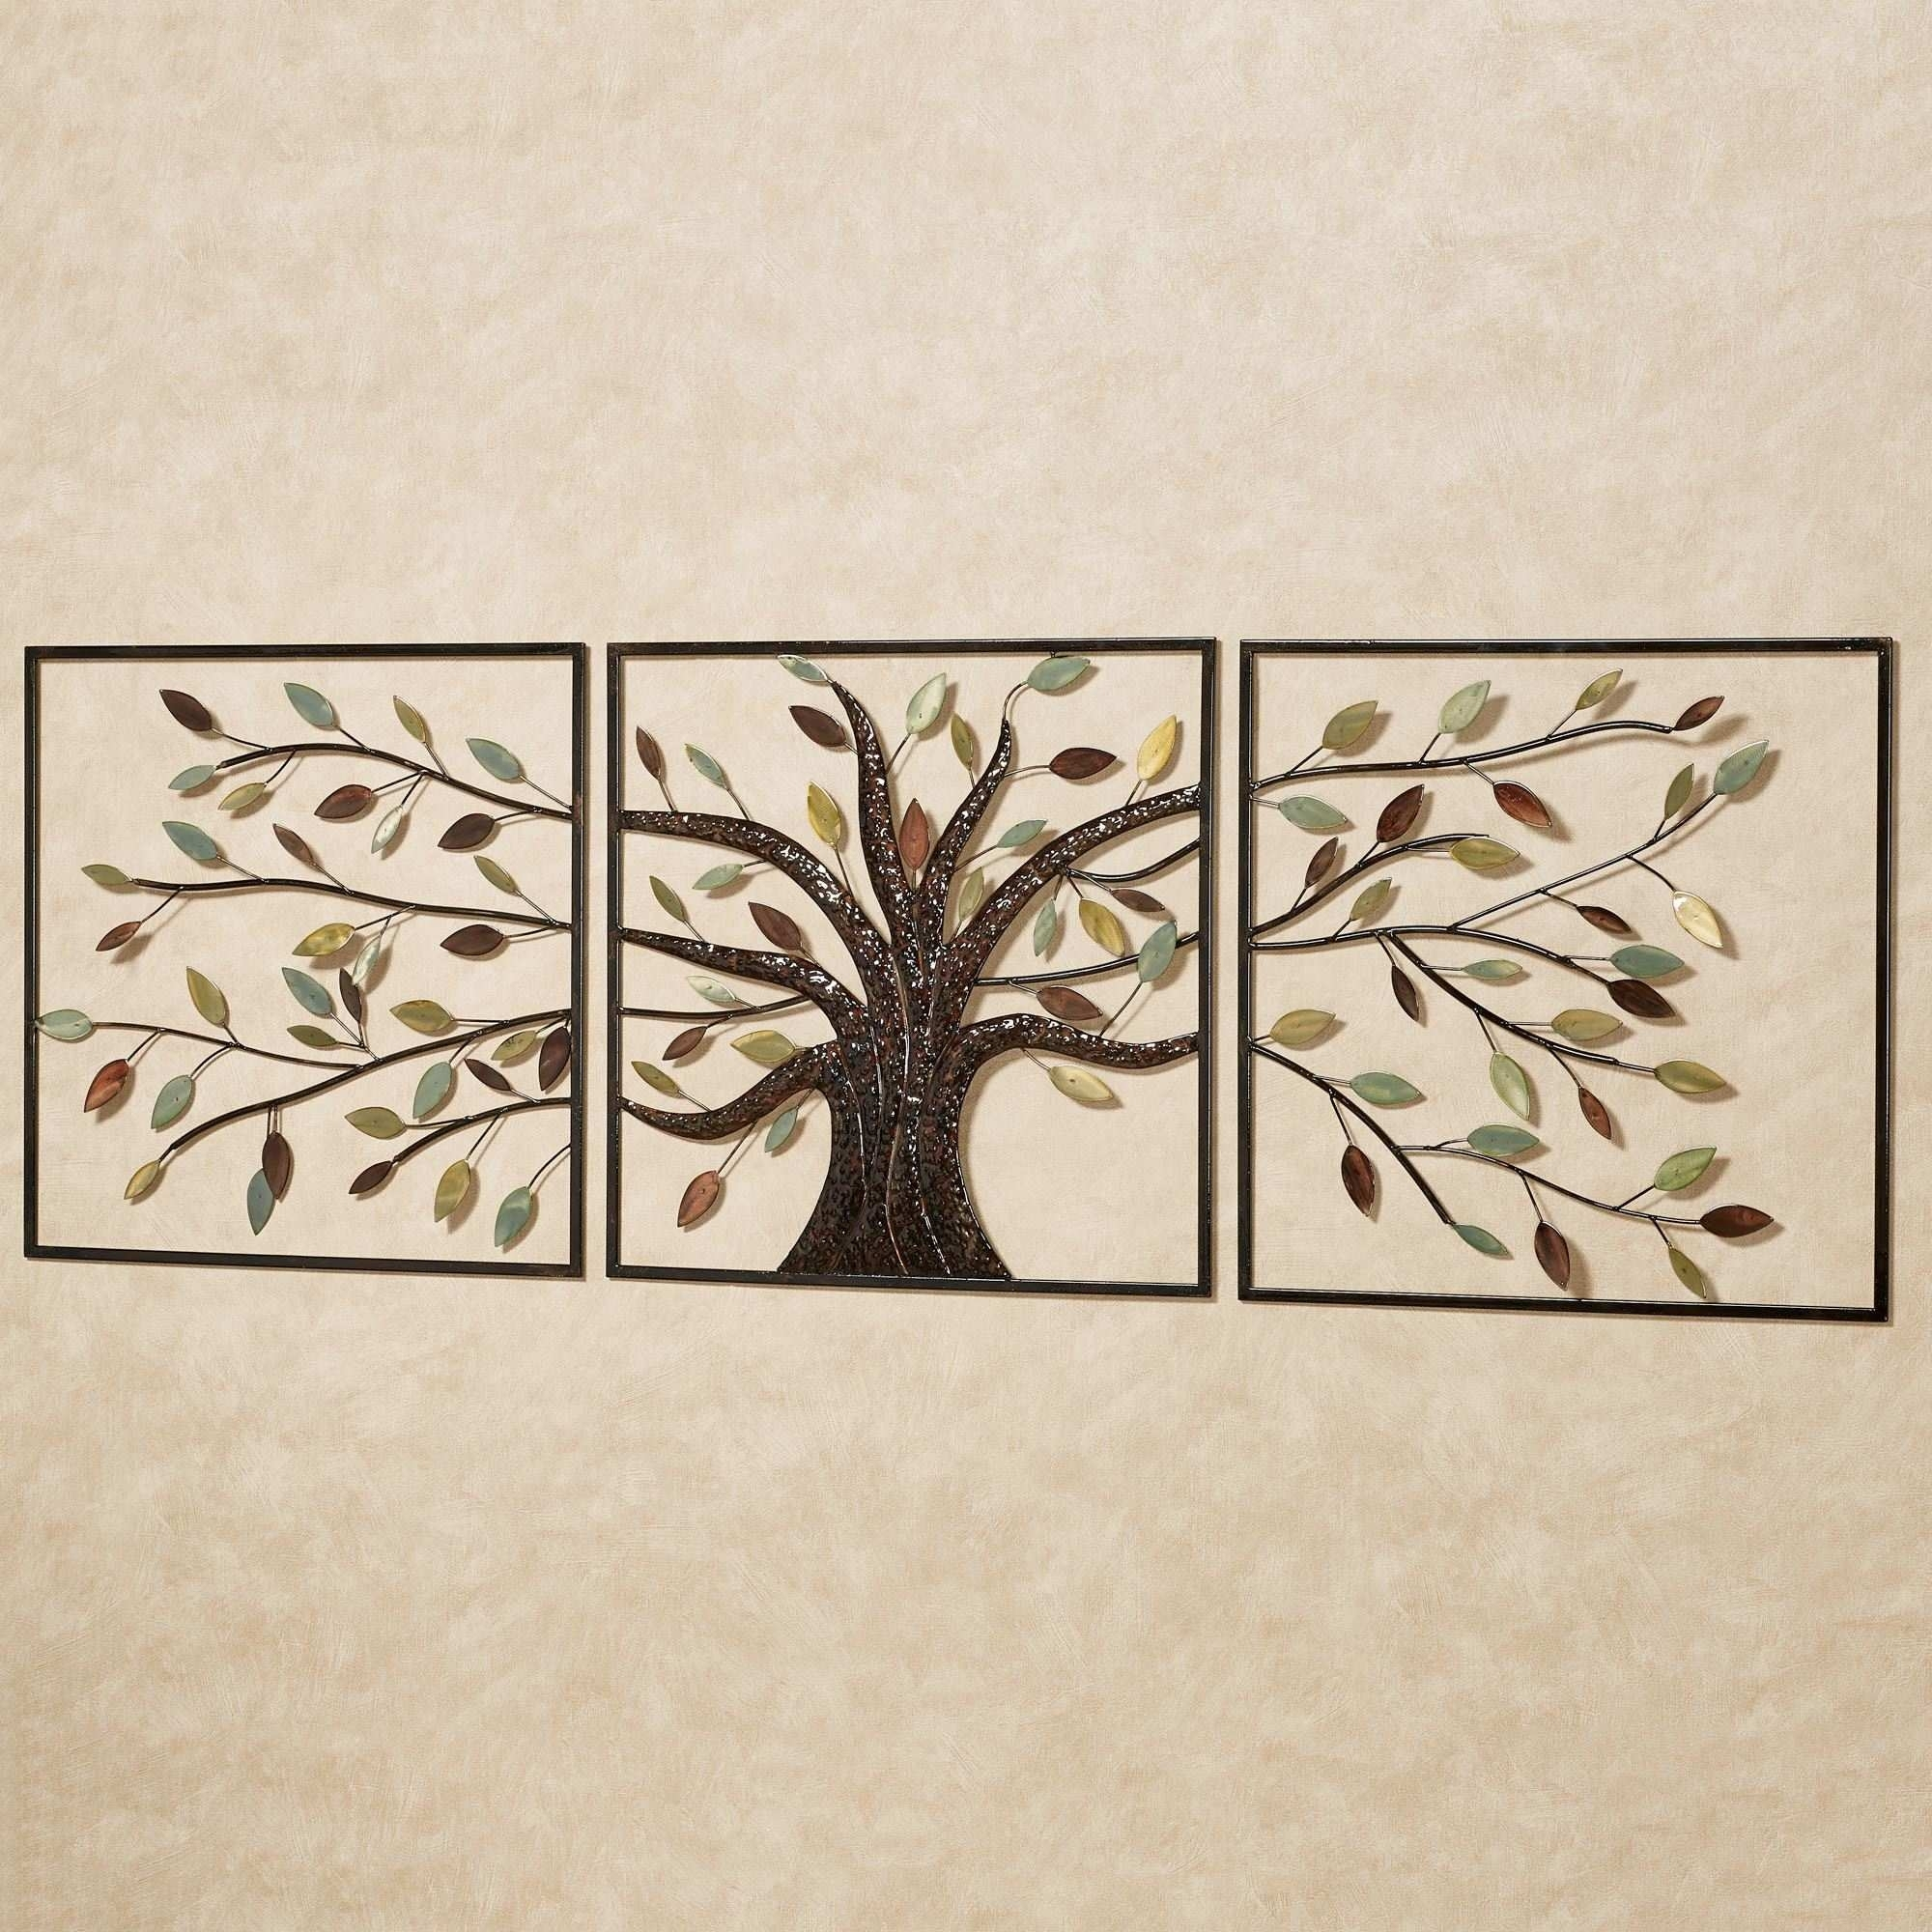 Metal Tree Wall Art Luxury Ever Changing Brown Tree Metal Wall Art intended for Metal Wall Art Trees (Image 8 of 20)